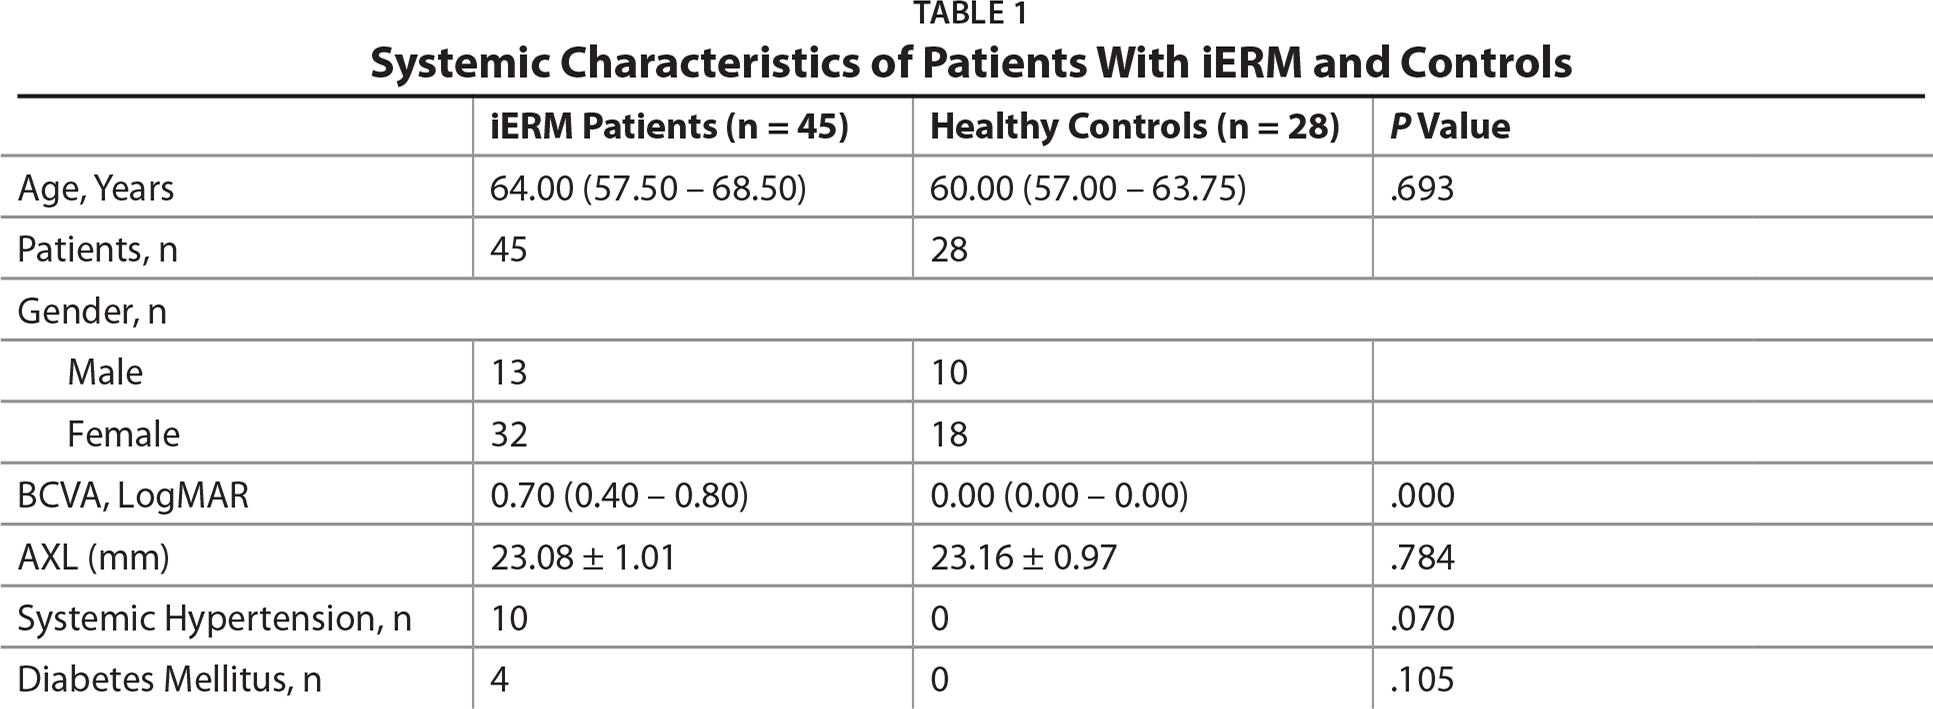 Systemic Characteristics of Patients With iERM and Controls